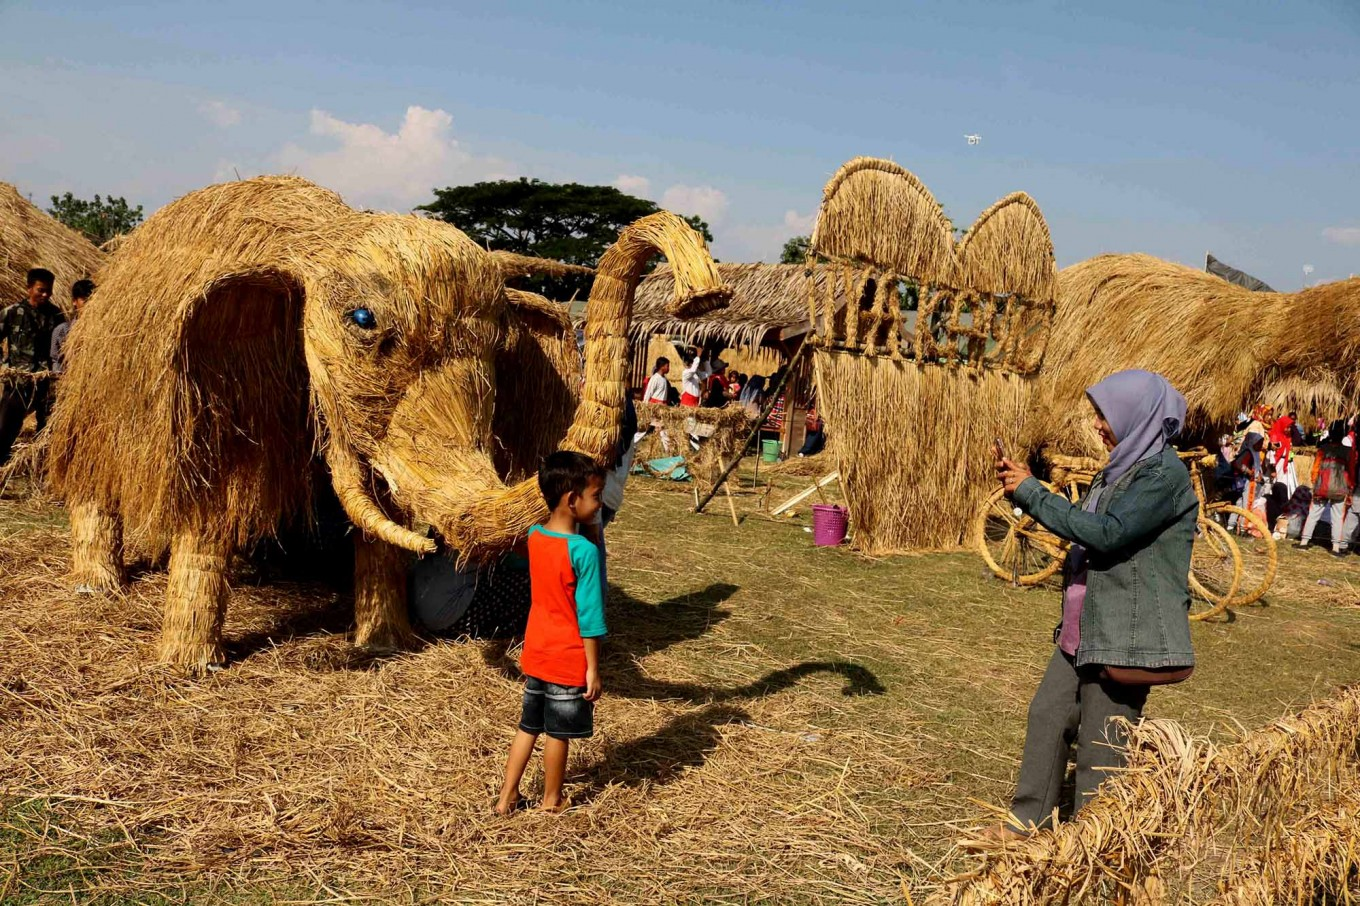 Prehistoric pal: A boy poses beside a Stegodon sculpture at the Straw  Festival, which celebrates discoveries from the prehistoric era in Banjarejo village, Grobogan, Central Java. JP/Maksum Nur Fauzan